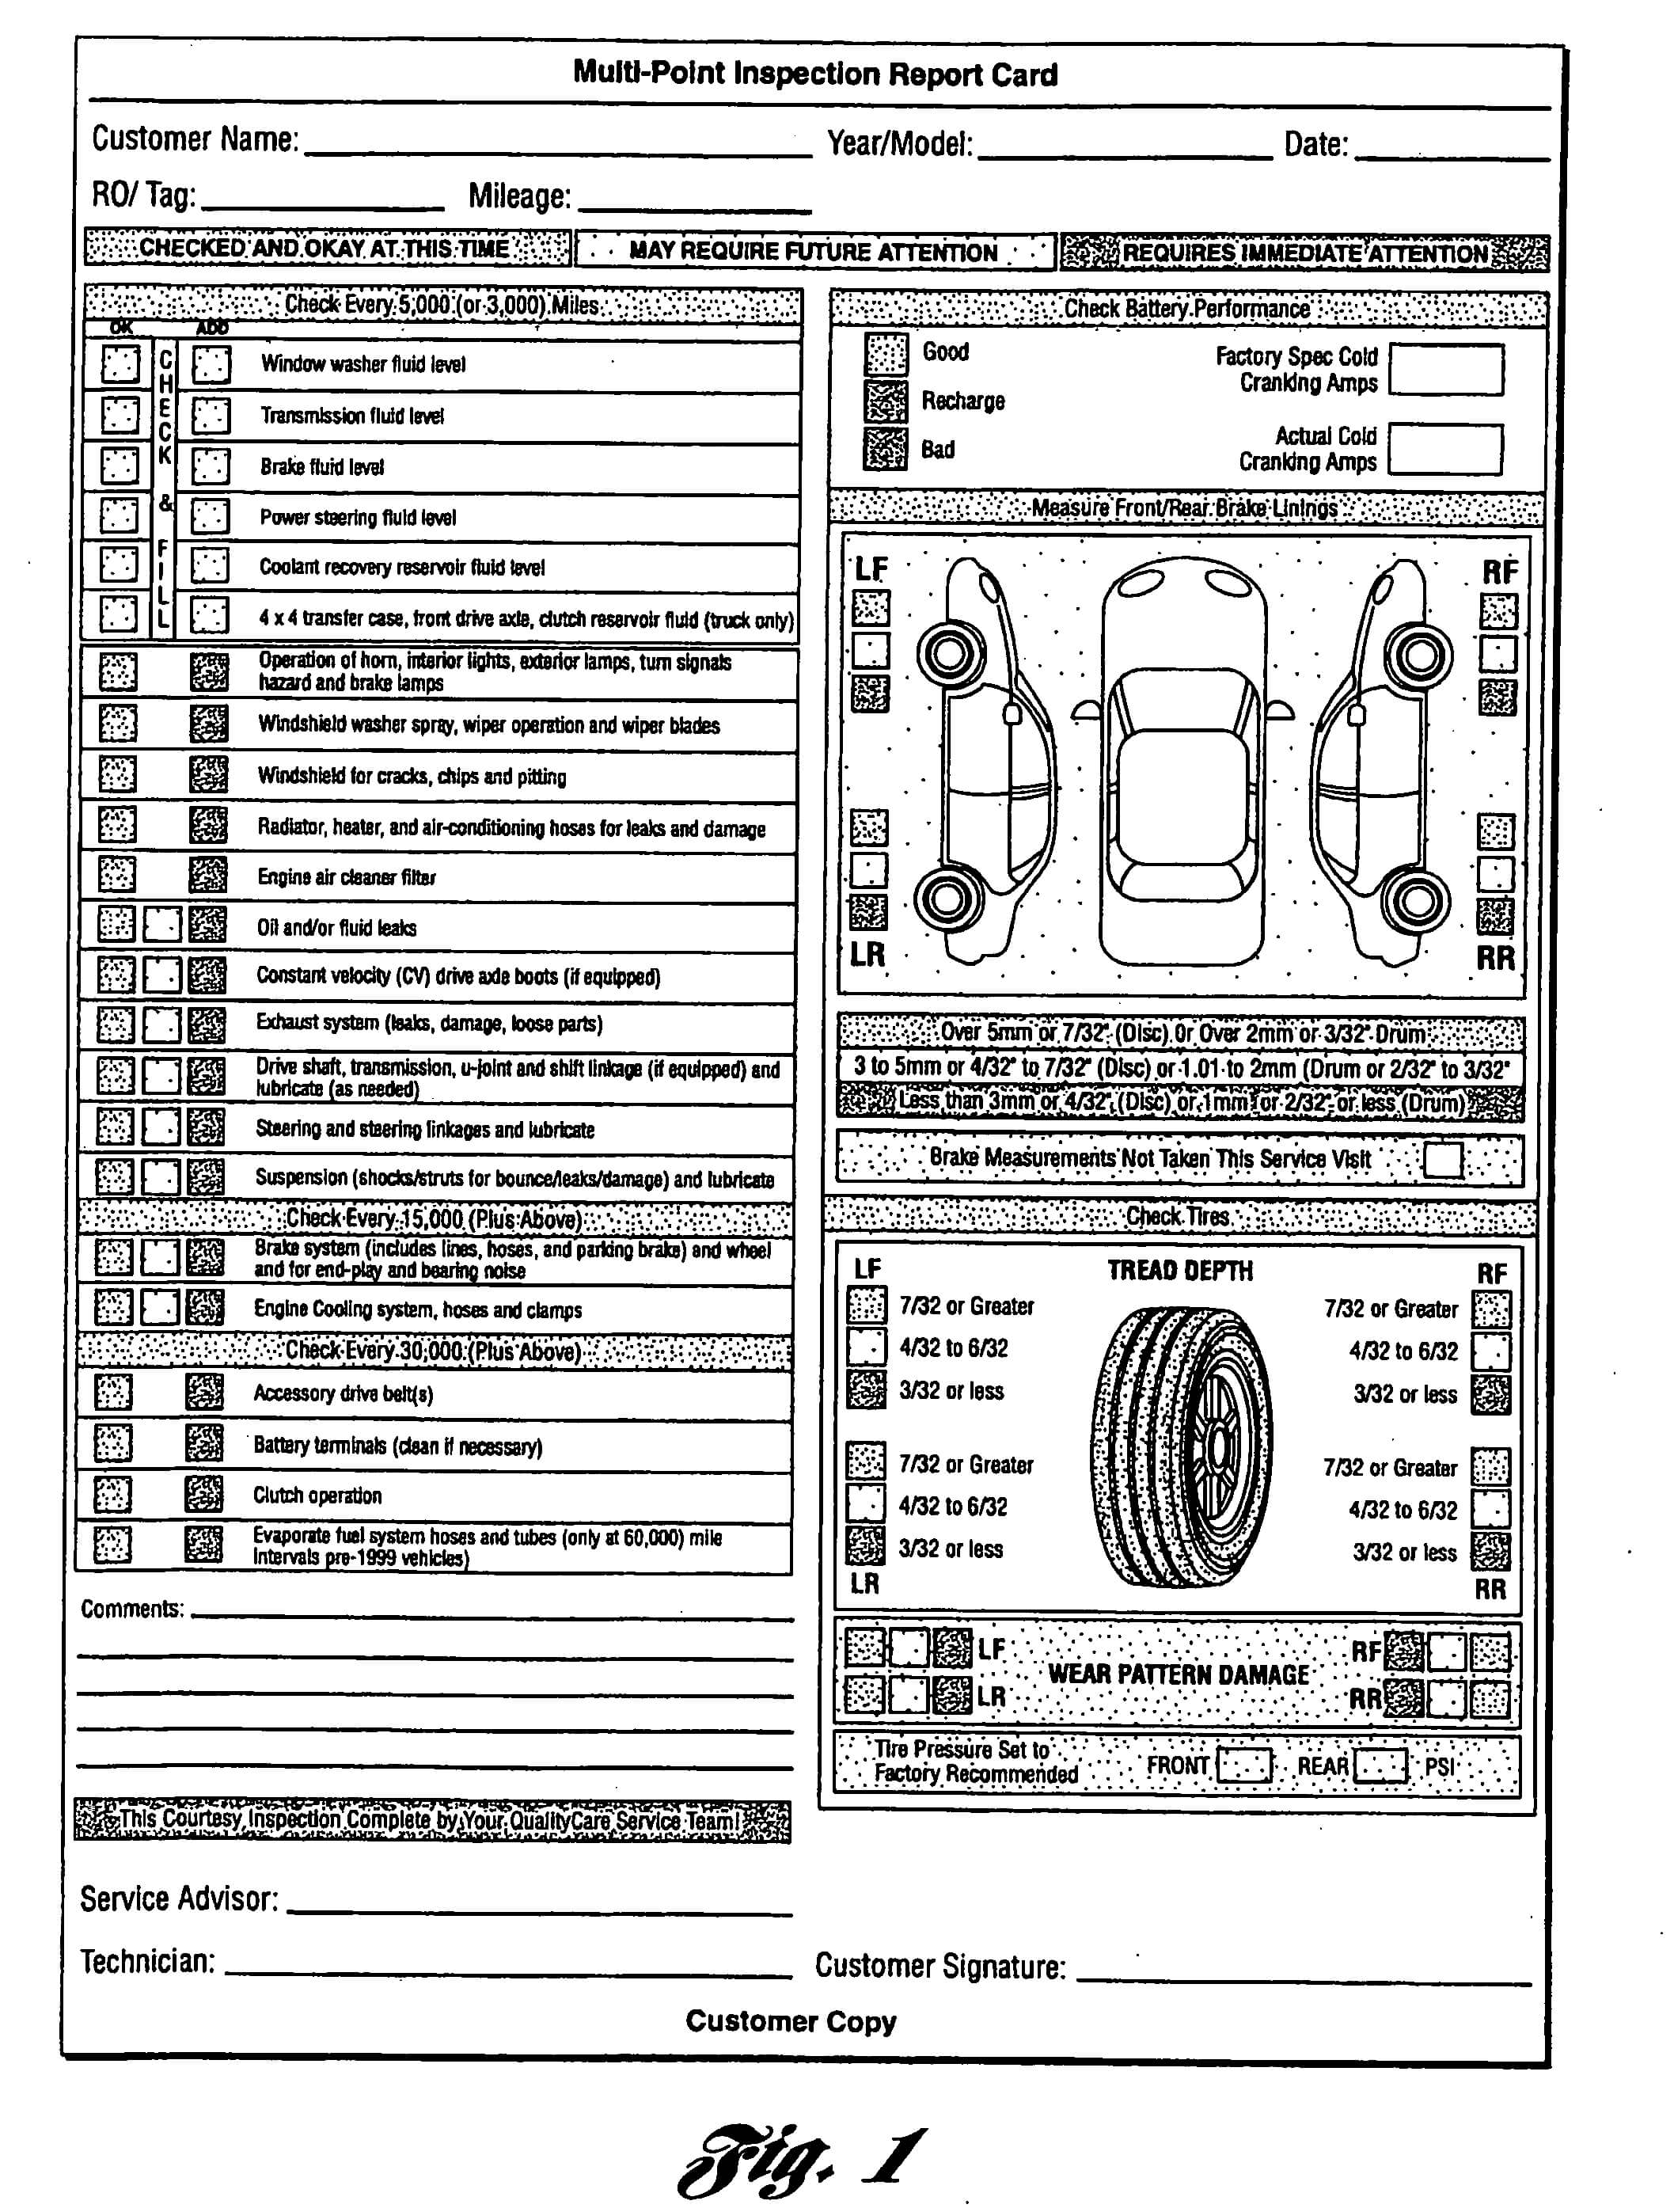 Multi Point Inspection Report Card As Recommendedford Intended For Vehicle Inspection Report Template